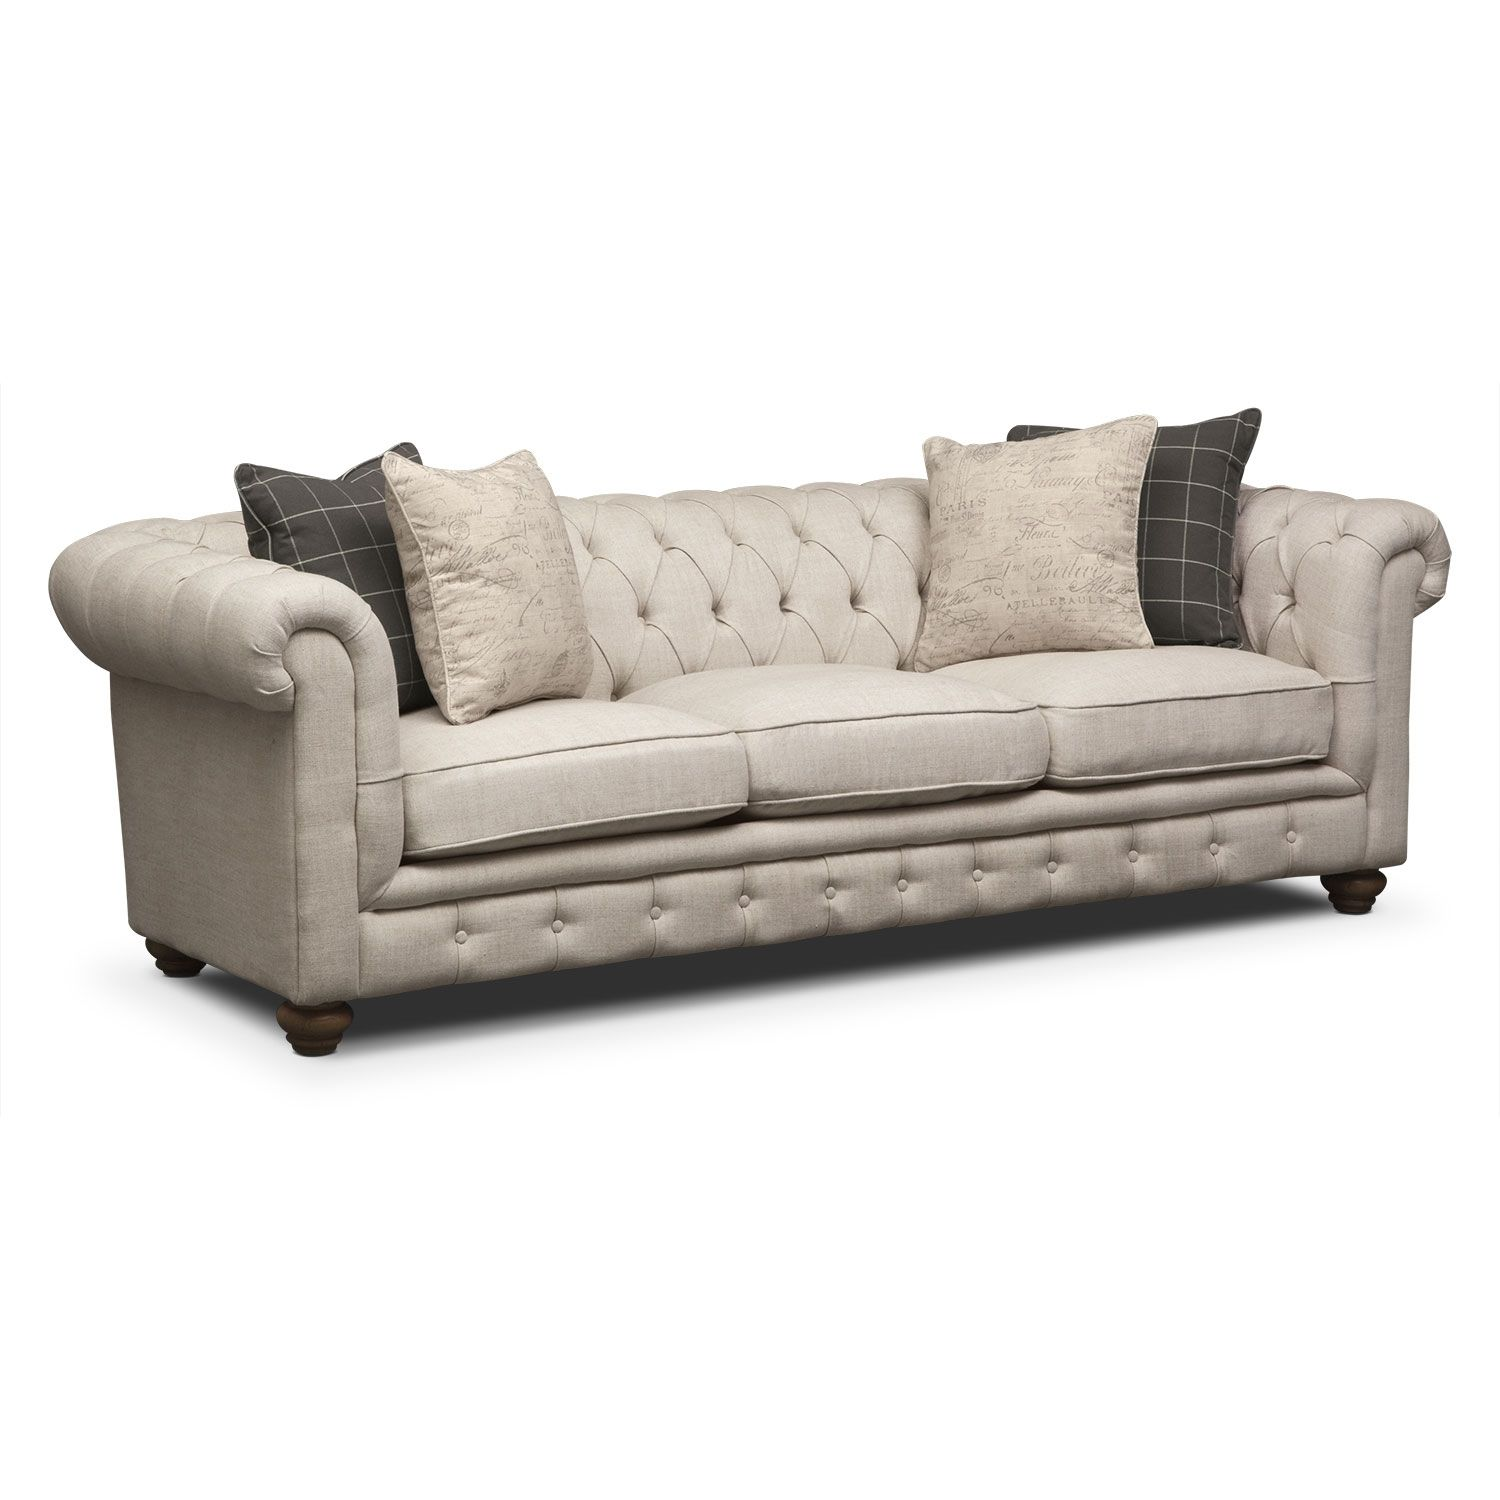 inspirational sectional sofas leather design-Contemporary Sectional sofas Leather Gallery